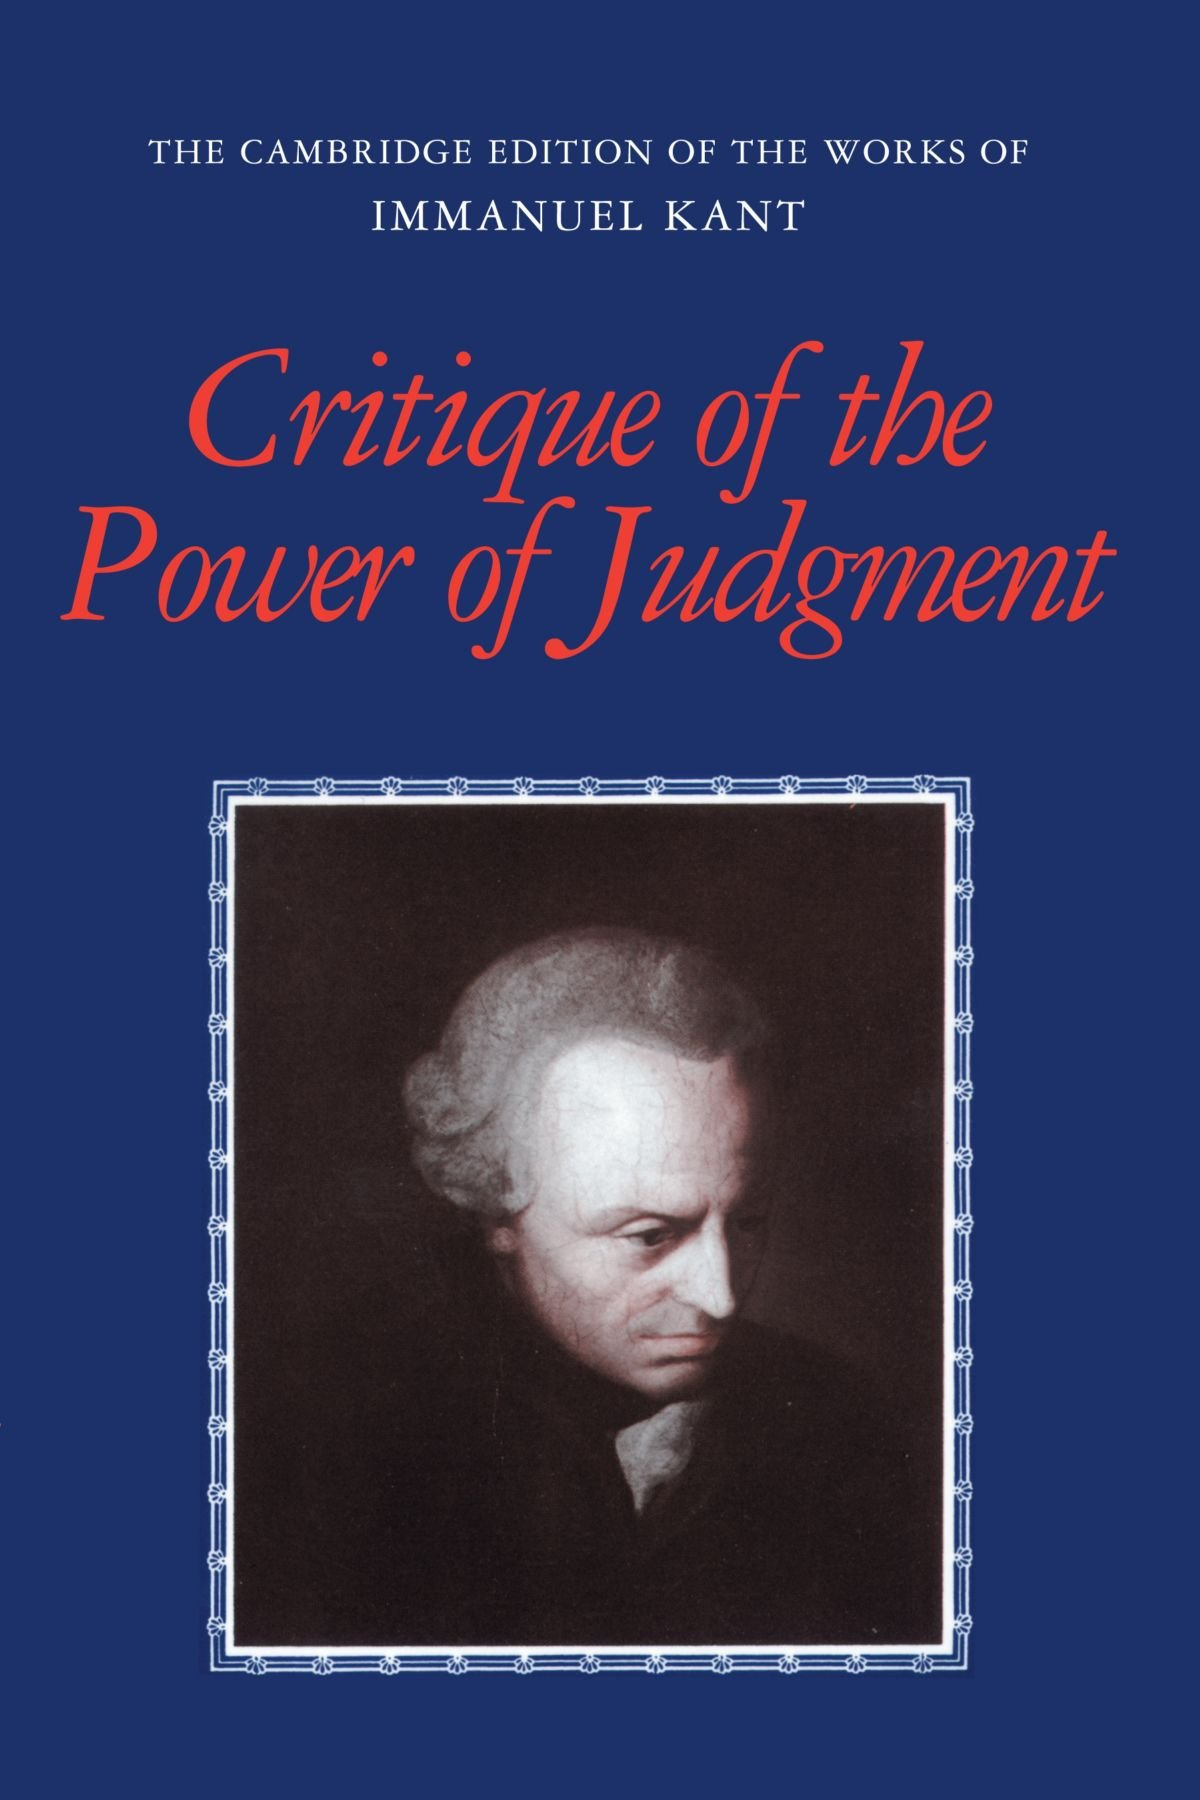 practical philosophy the cambridge edition of the works of critique of the power of judgment the cambridge edition of the works of immanuel kant